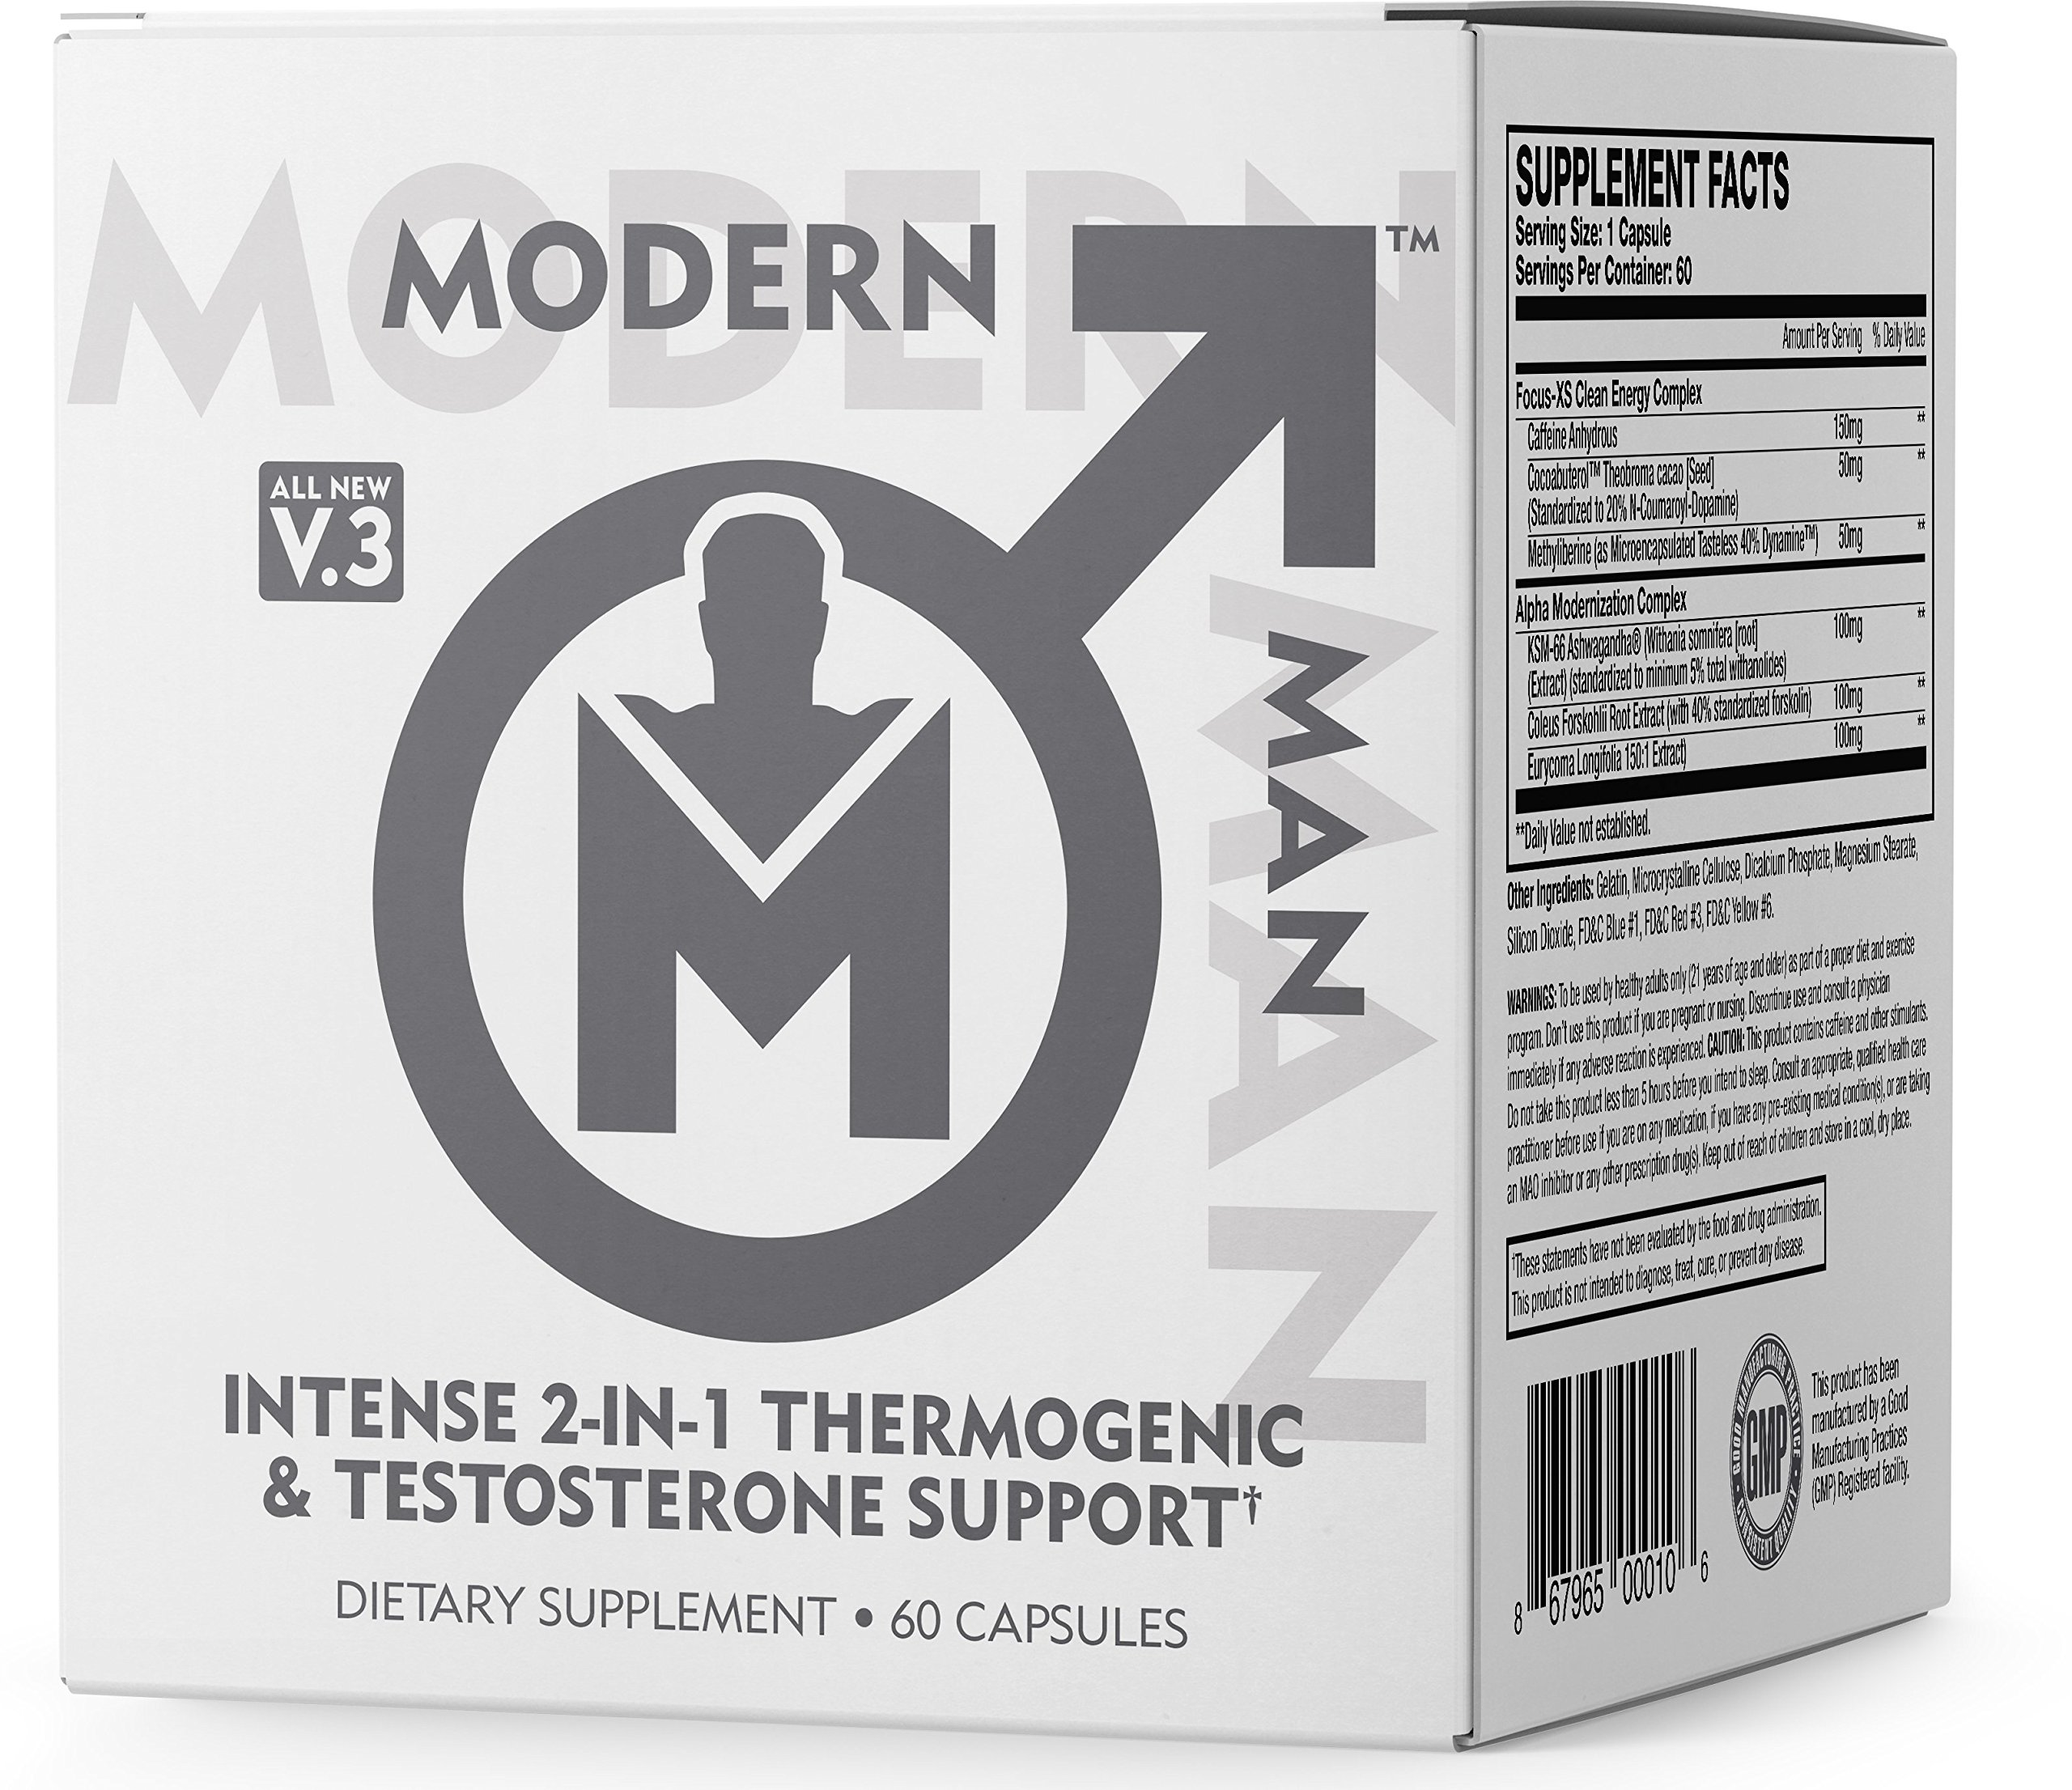 Modern Man V3 - Testosterone Booster + Thermogenic Fat Burner for Men, Boost Focus, Energy & Alpha Drive - Anabolic Weight Loss Supplement & Lean Muscle Builder | Lose Belly Fat - 60 Pills by Modern Man Products